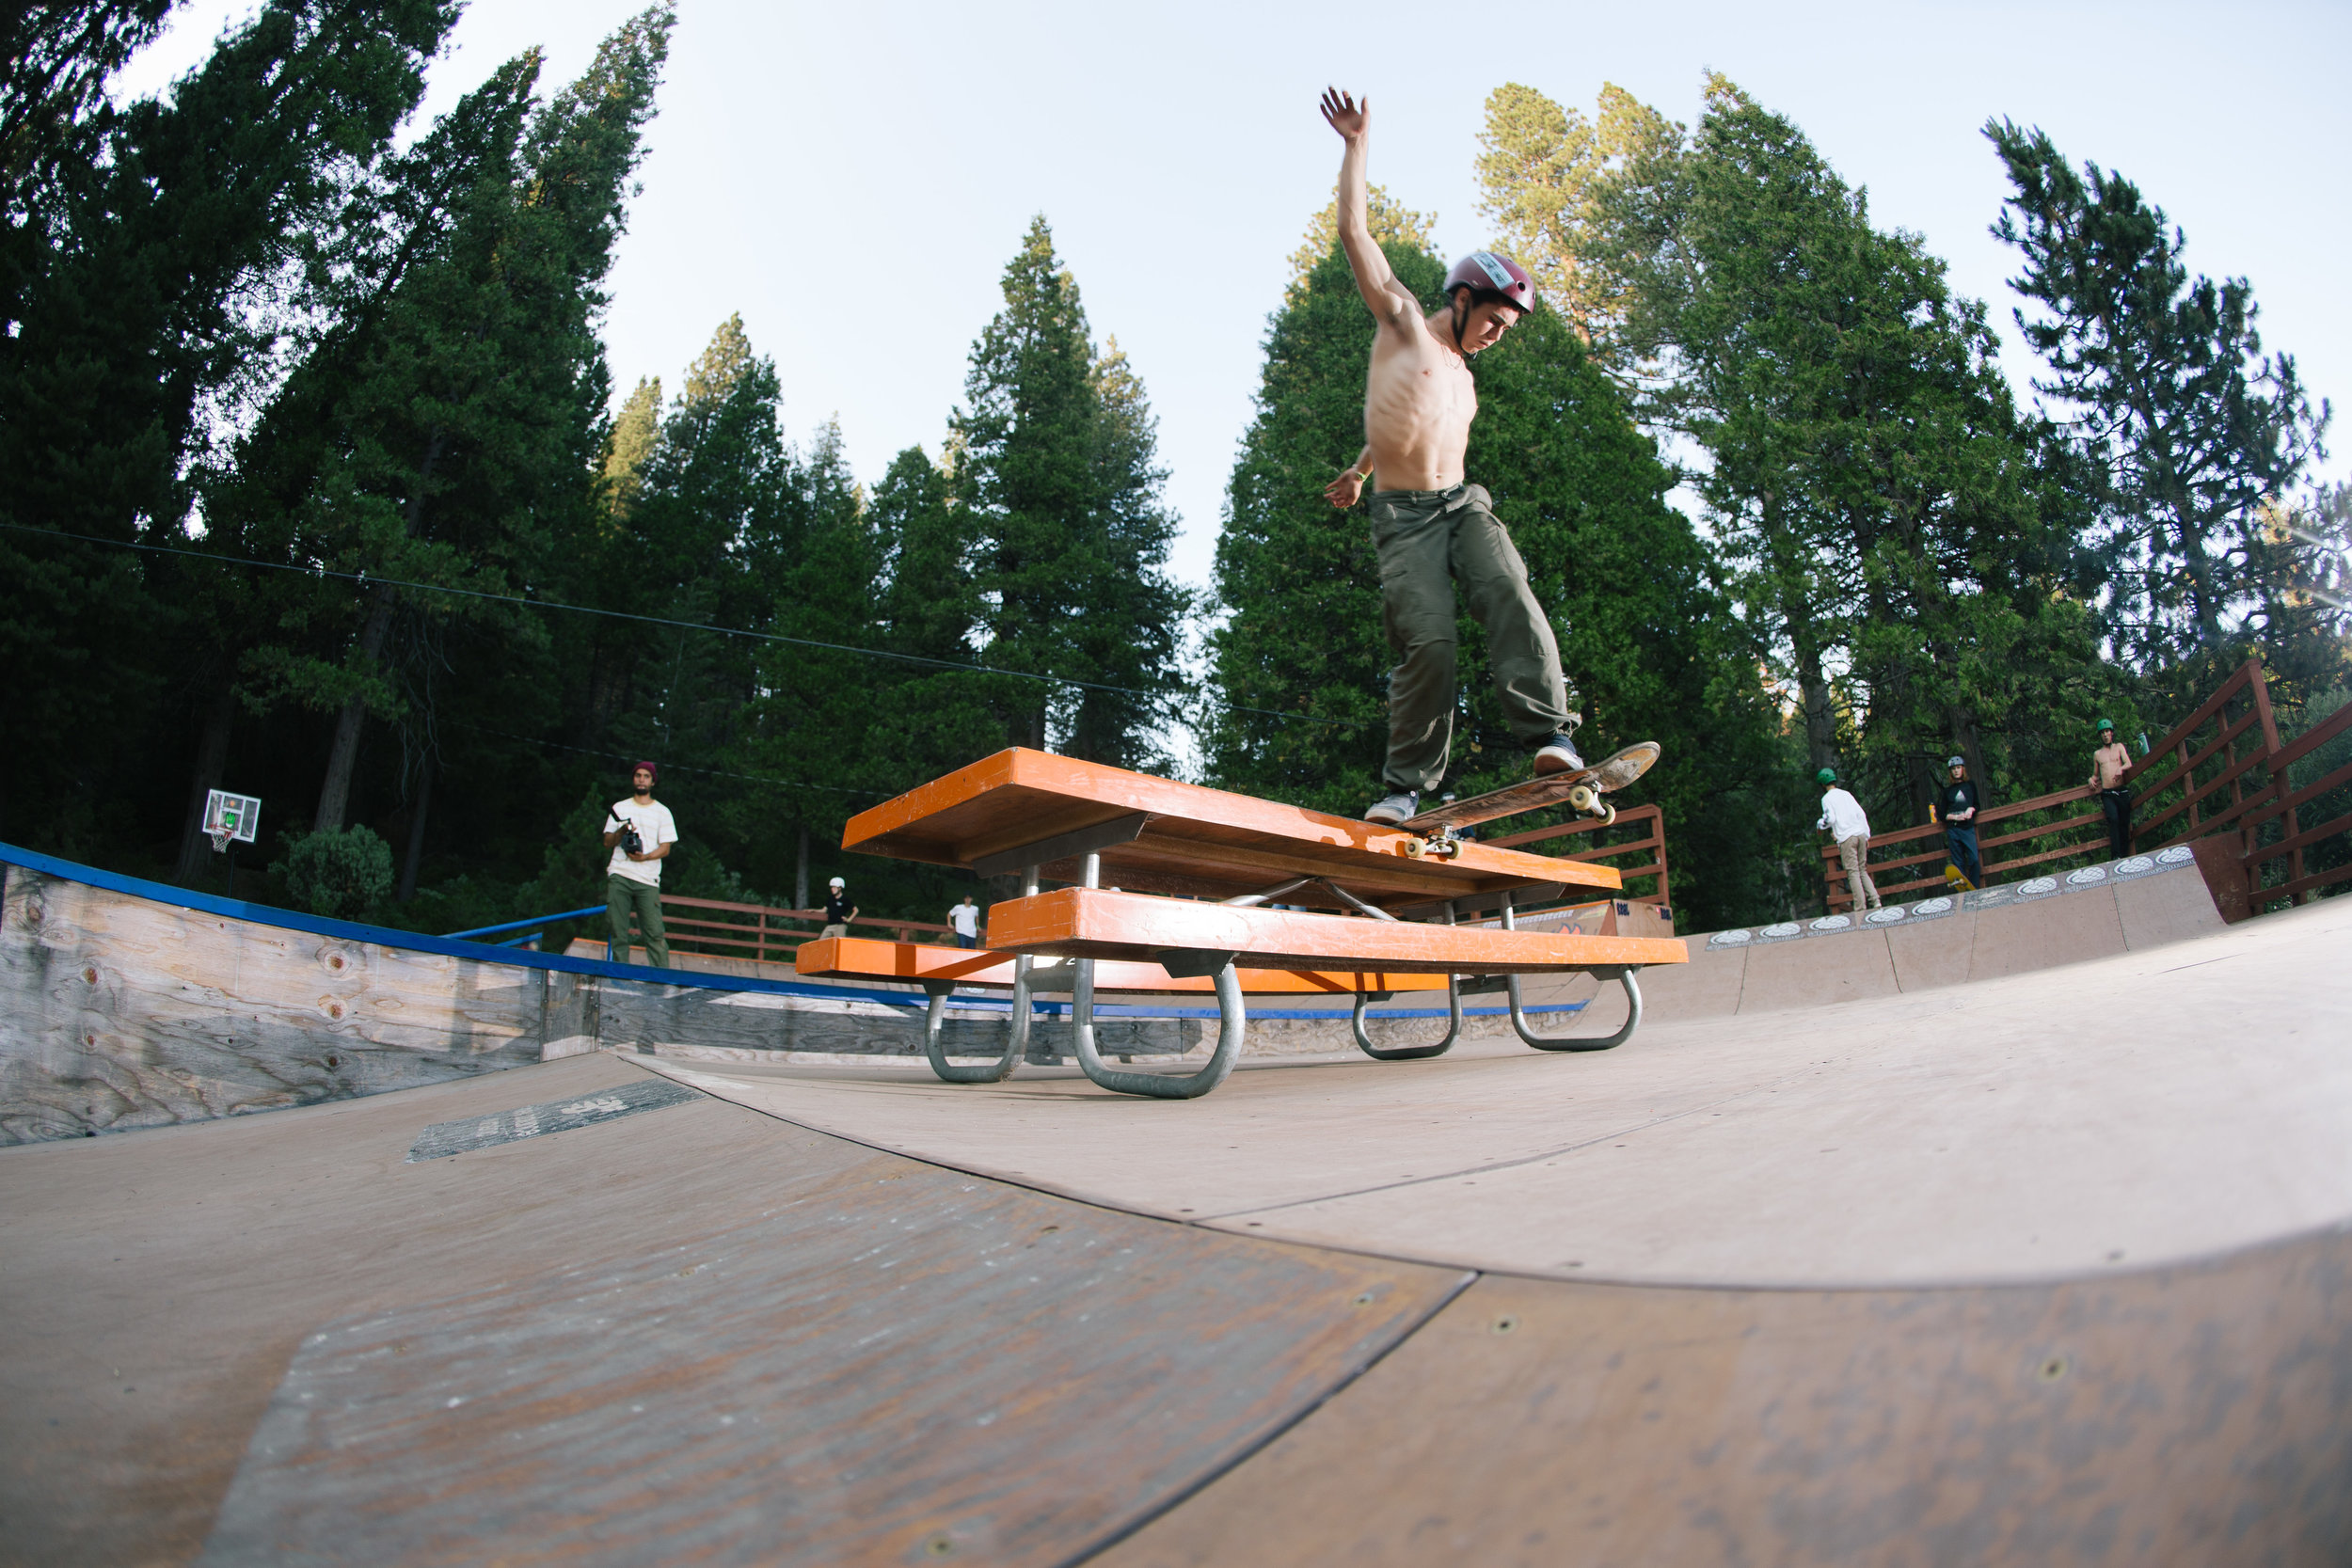 SHRED THE PARKS